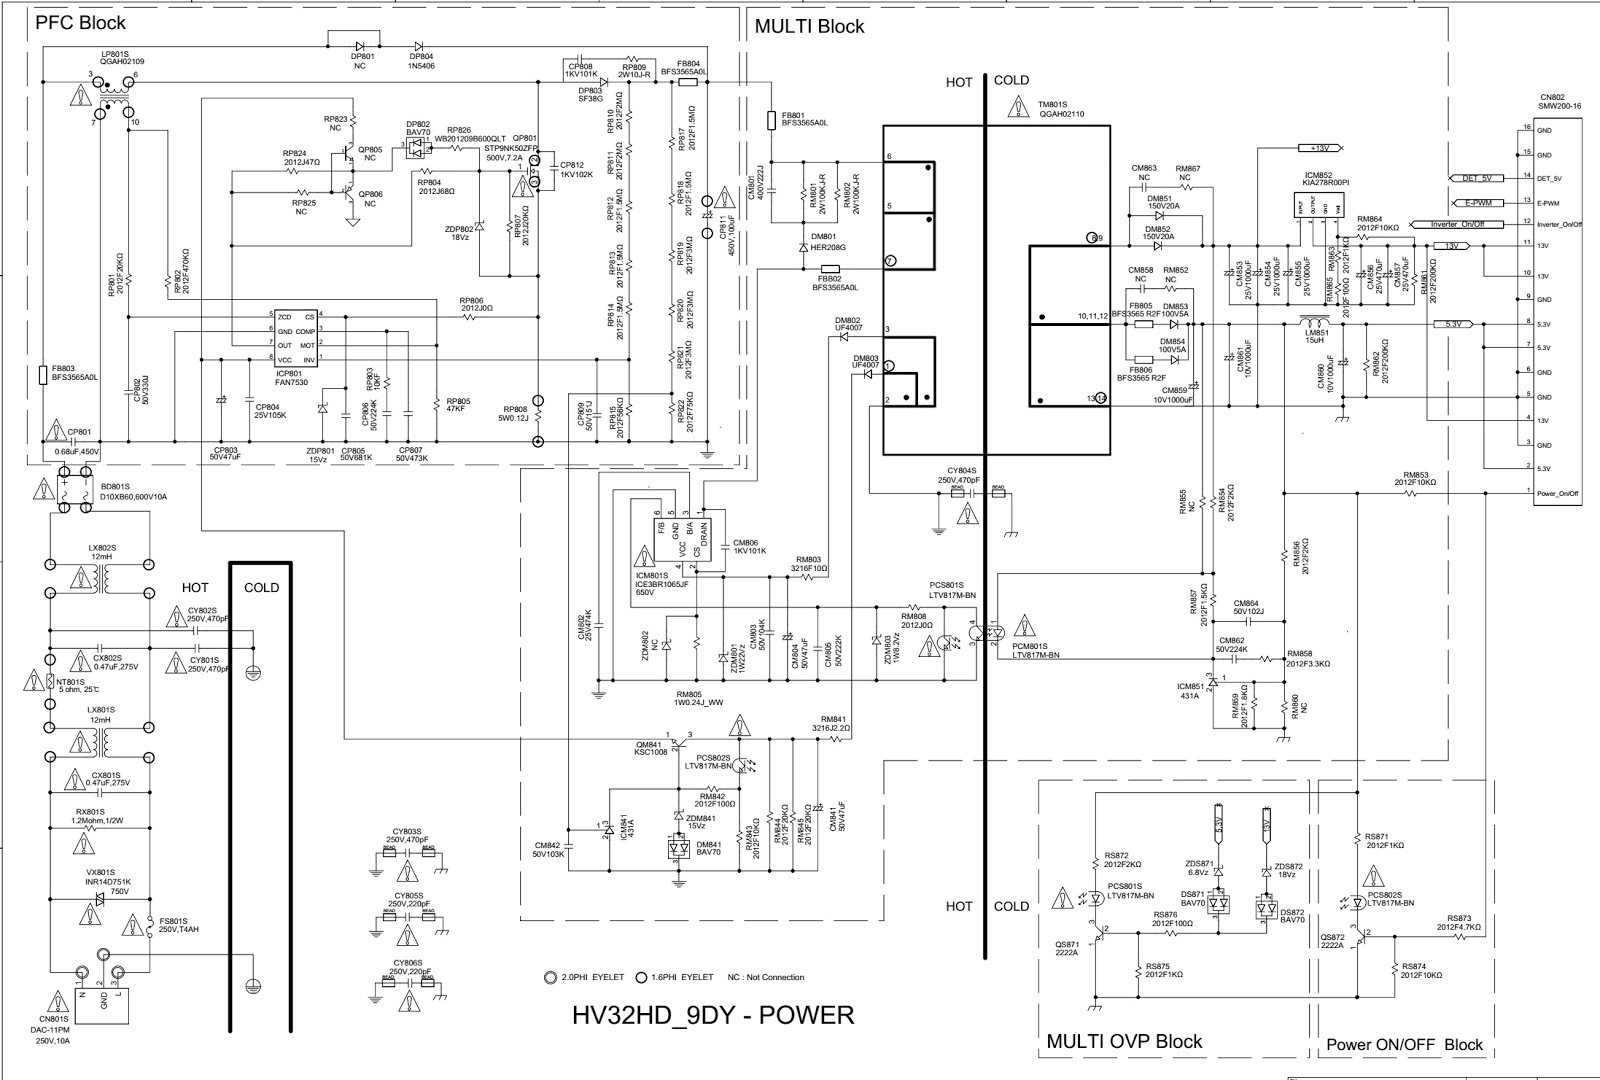 Led Tv Circuit Diagram Smart Wiring Diagrams Blinking Using 555 Timer Youtube Hv32hd 9dy Bn44 00289a Samsung Le32b350f1w Pdf